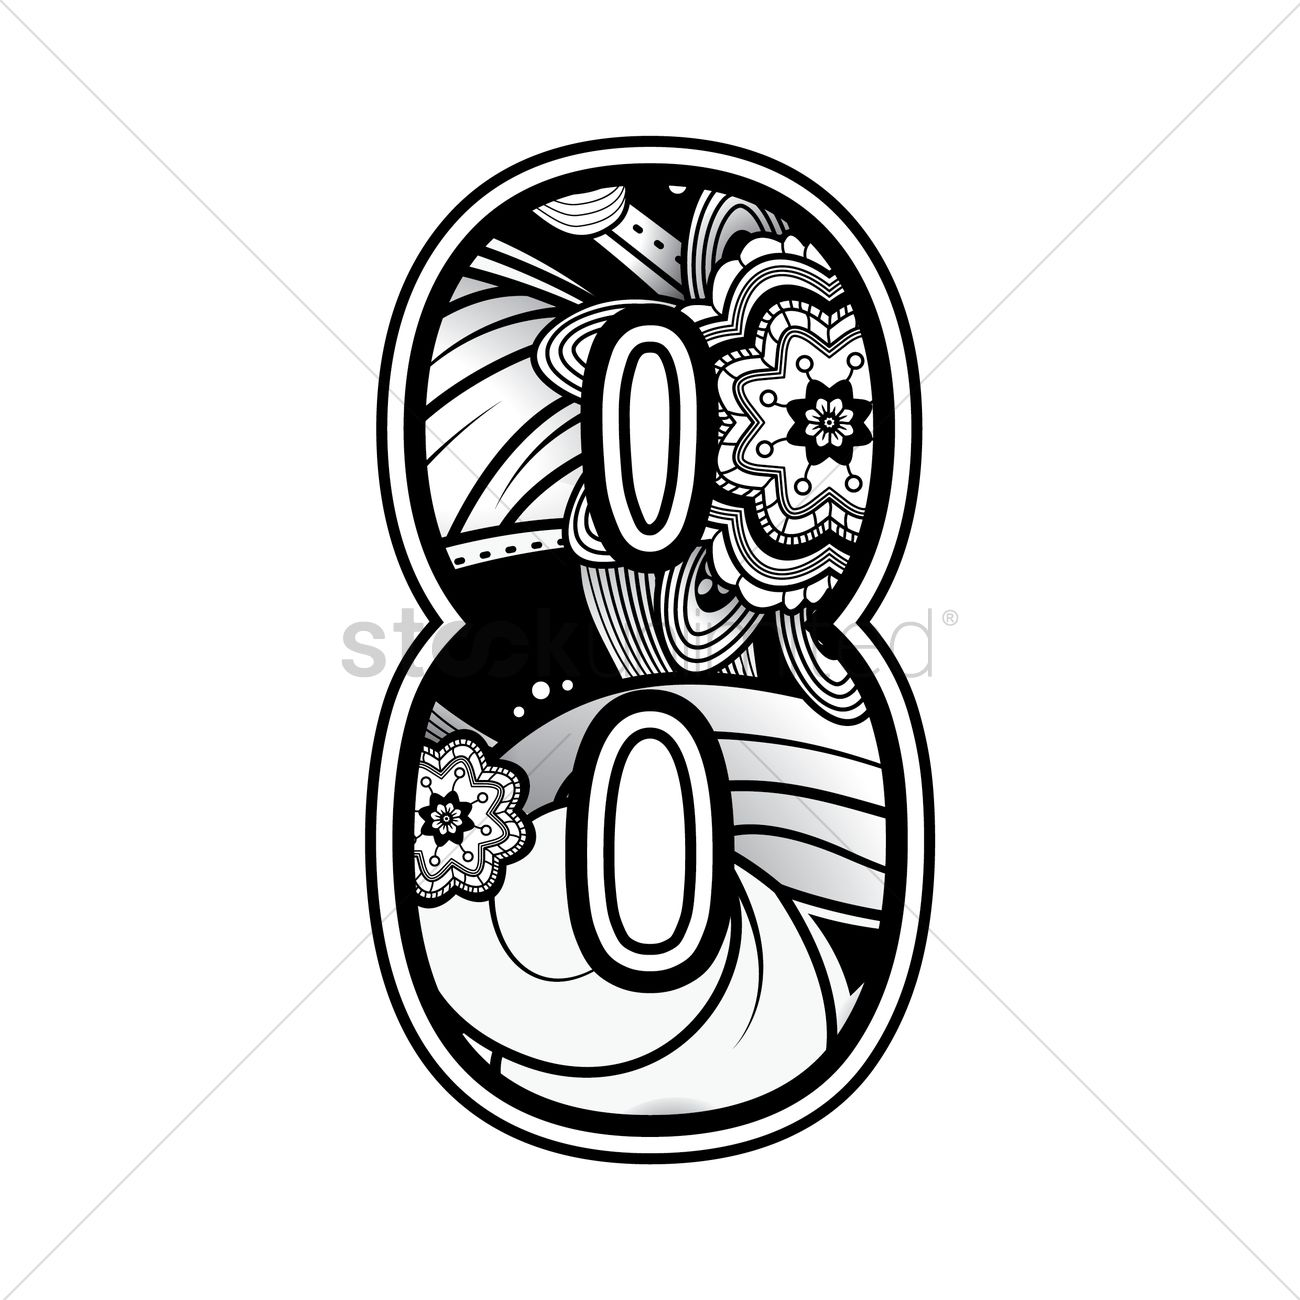 1300x1300 Free Decorative Number 8 Vector Image